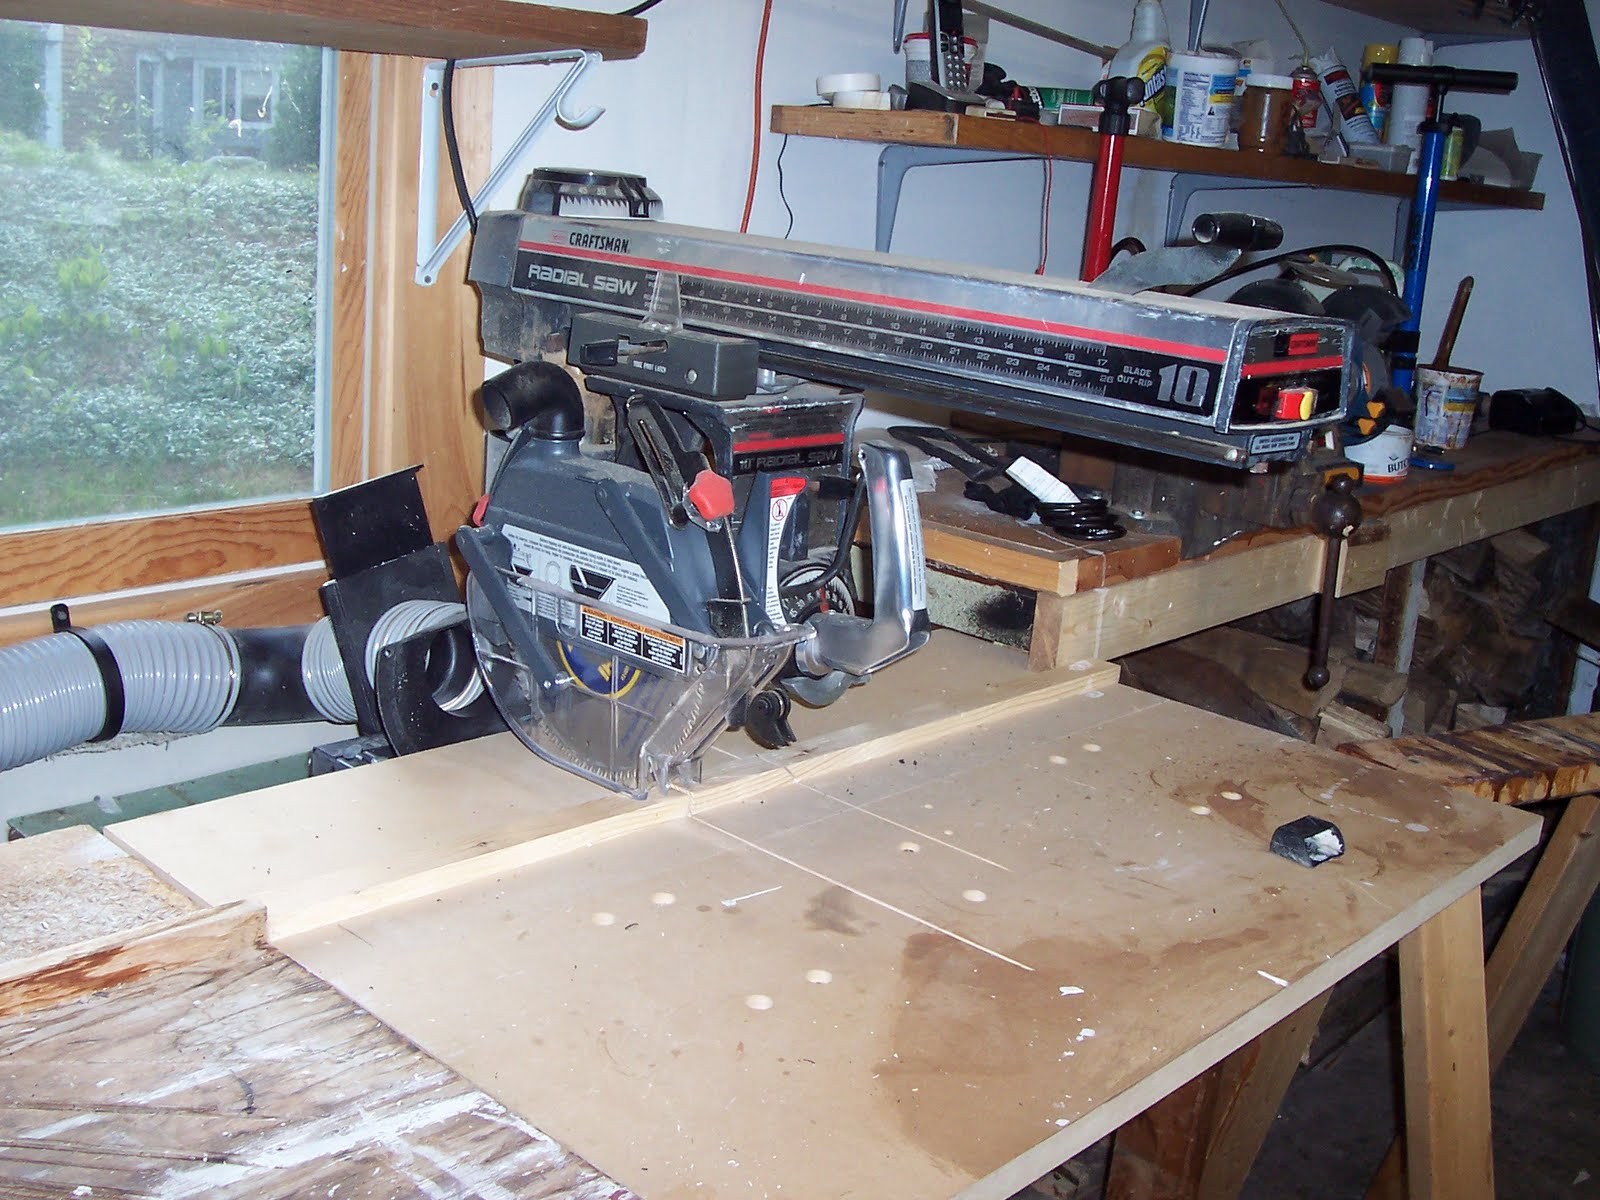 Radial Arm Saw Bench Plans http://gordonharris.blogspot.com/2011/08/dust-collection-in-home-shop.html